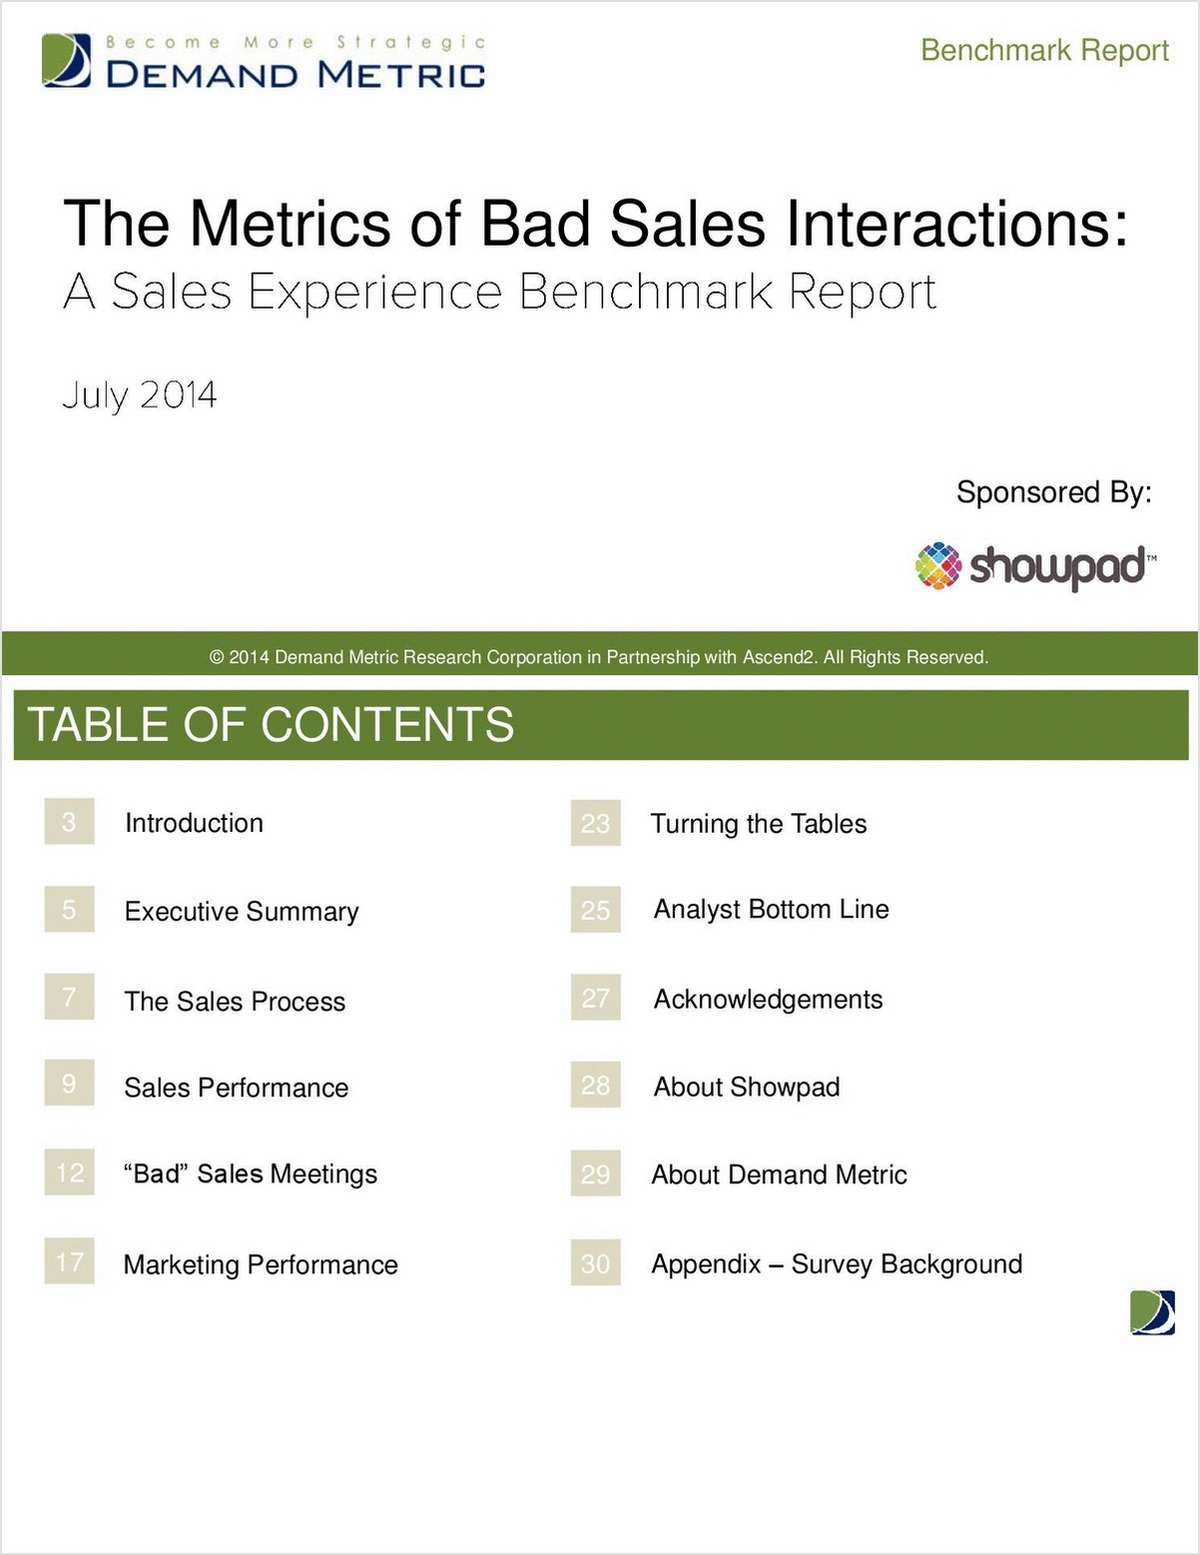 The Metrics of Bad Sales Interactions: A Sales Experience Benchmark Report